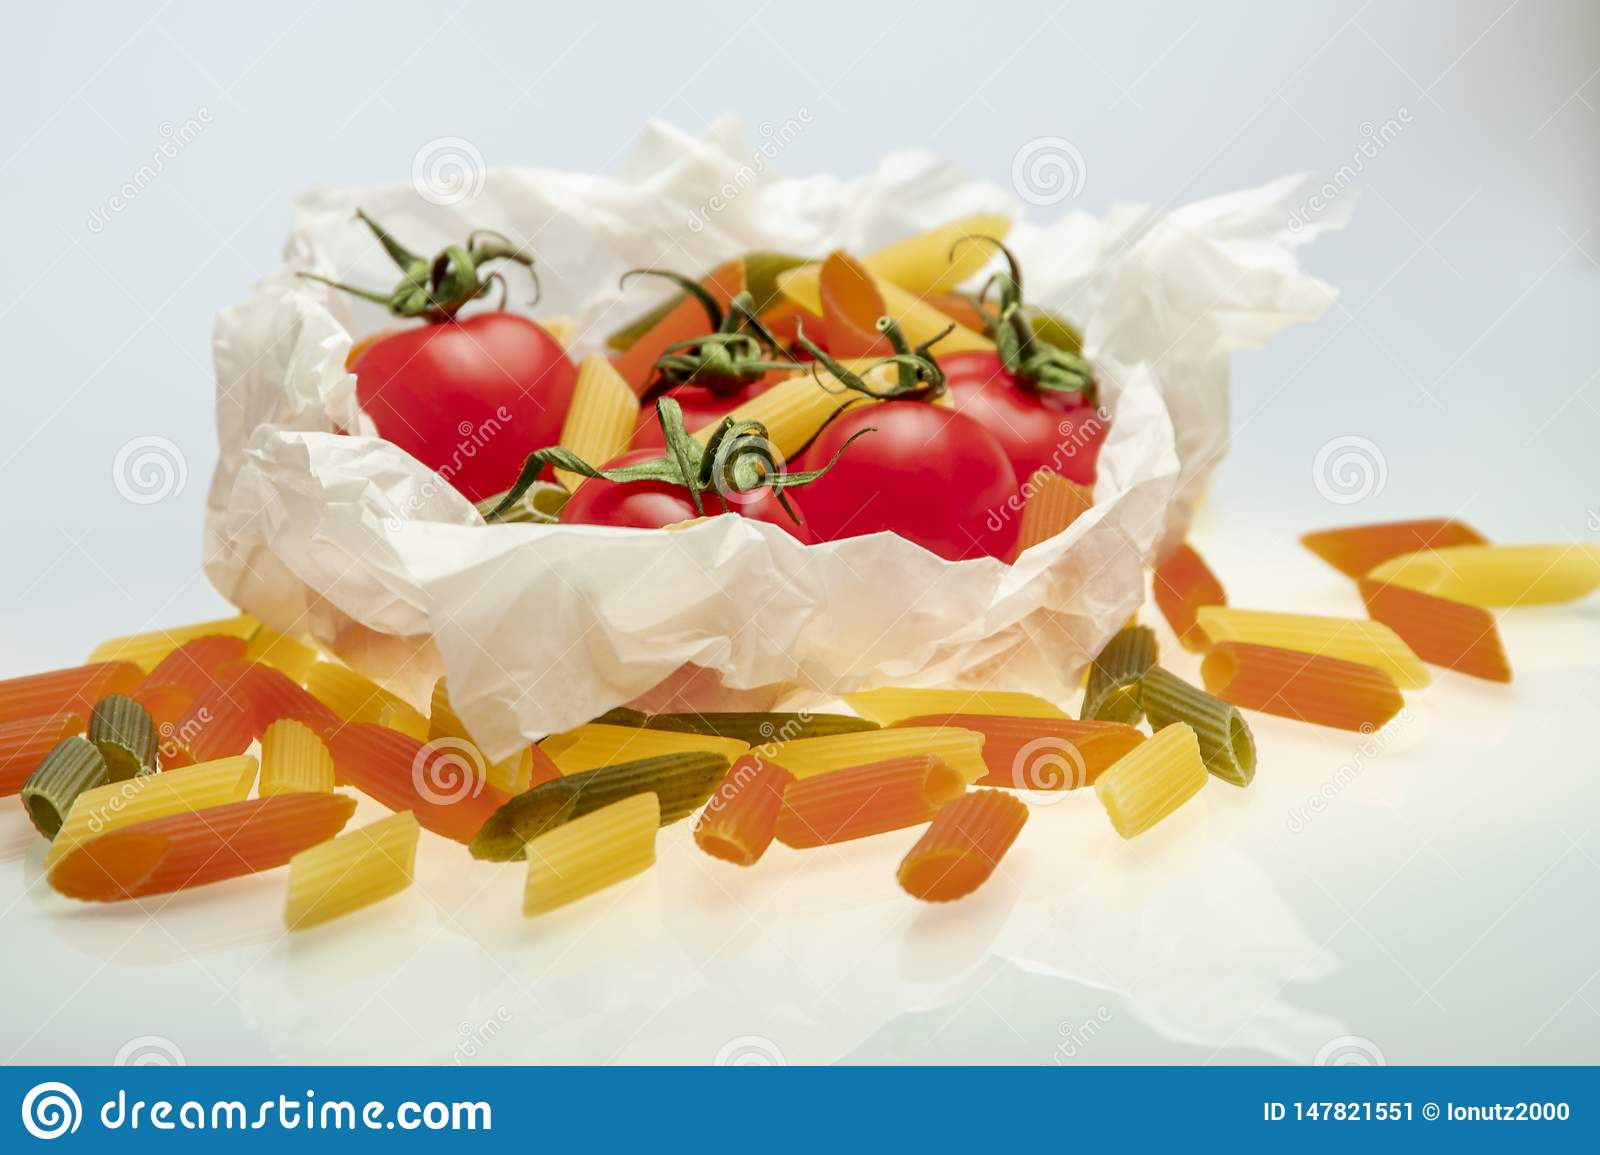 Group of cherry tomatoes and colored pasta wrapped in cooking paper